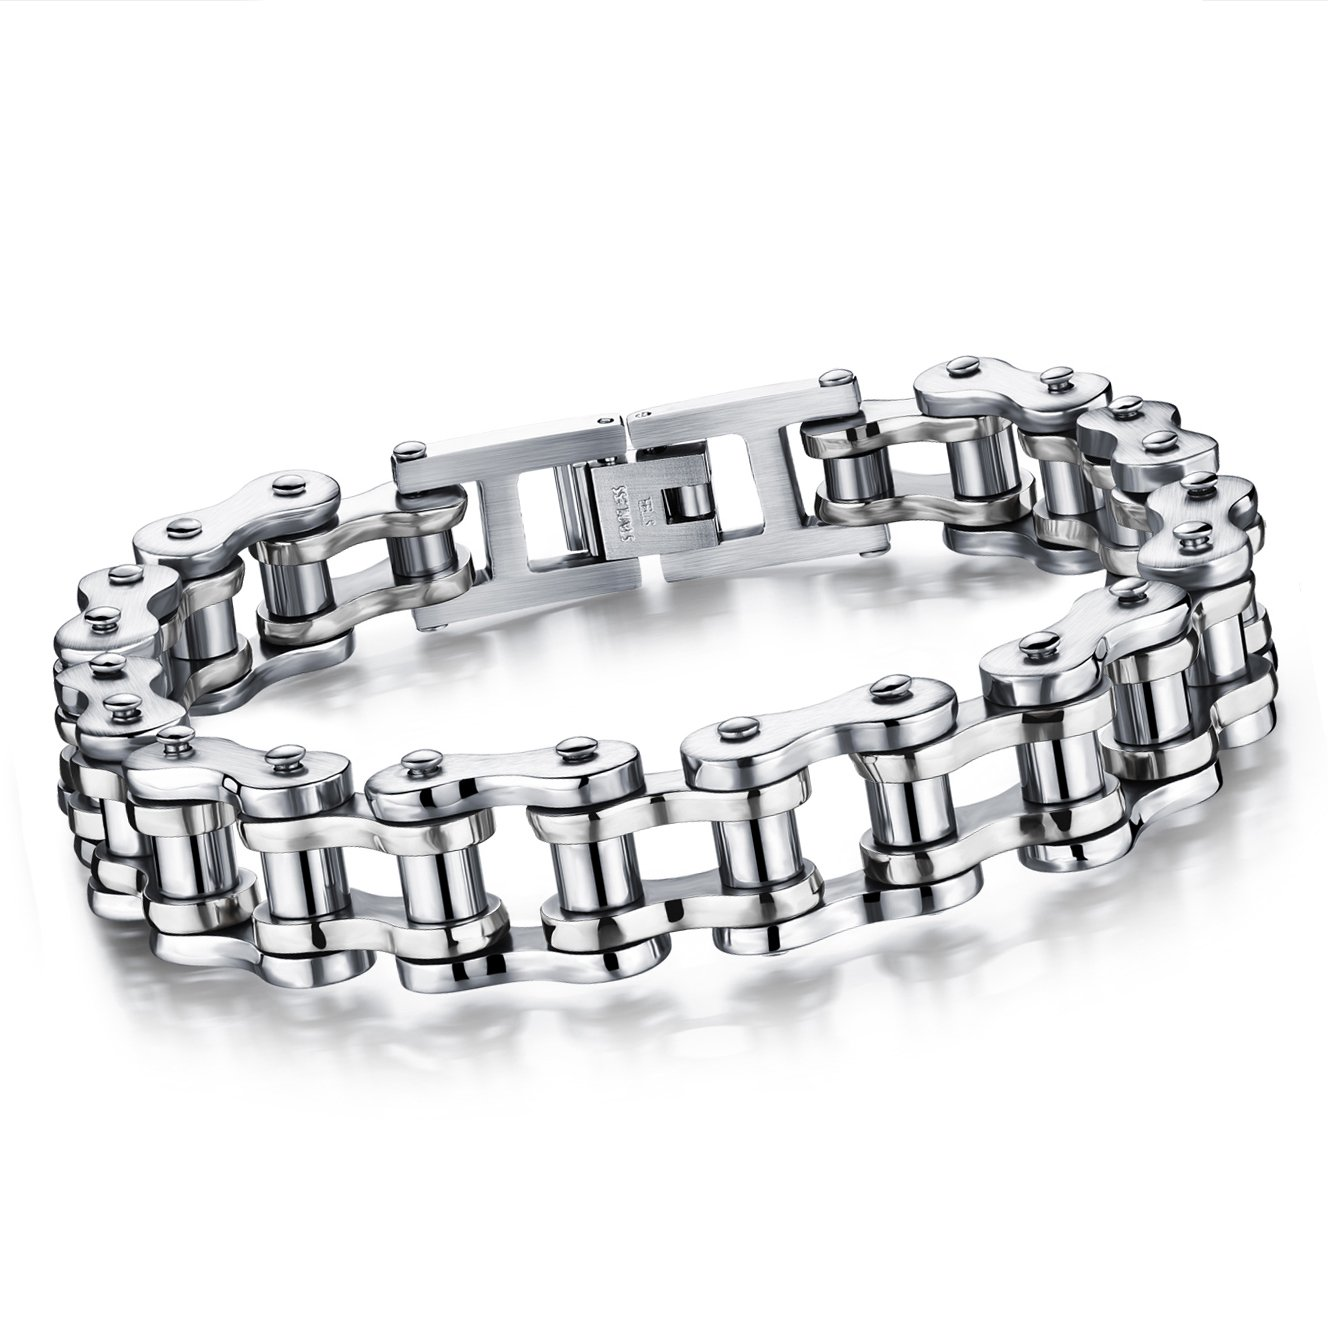 Cupimatch Cool Silver Stainless Steel Motorcycle Biker Chain Bracelet Punk Rock Link Wristband for Men, 8.5 8.5 C006058